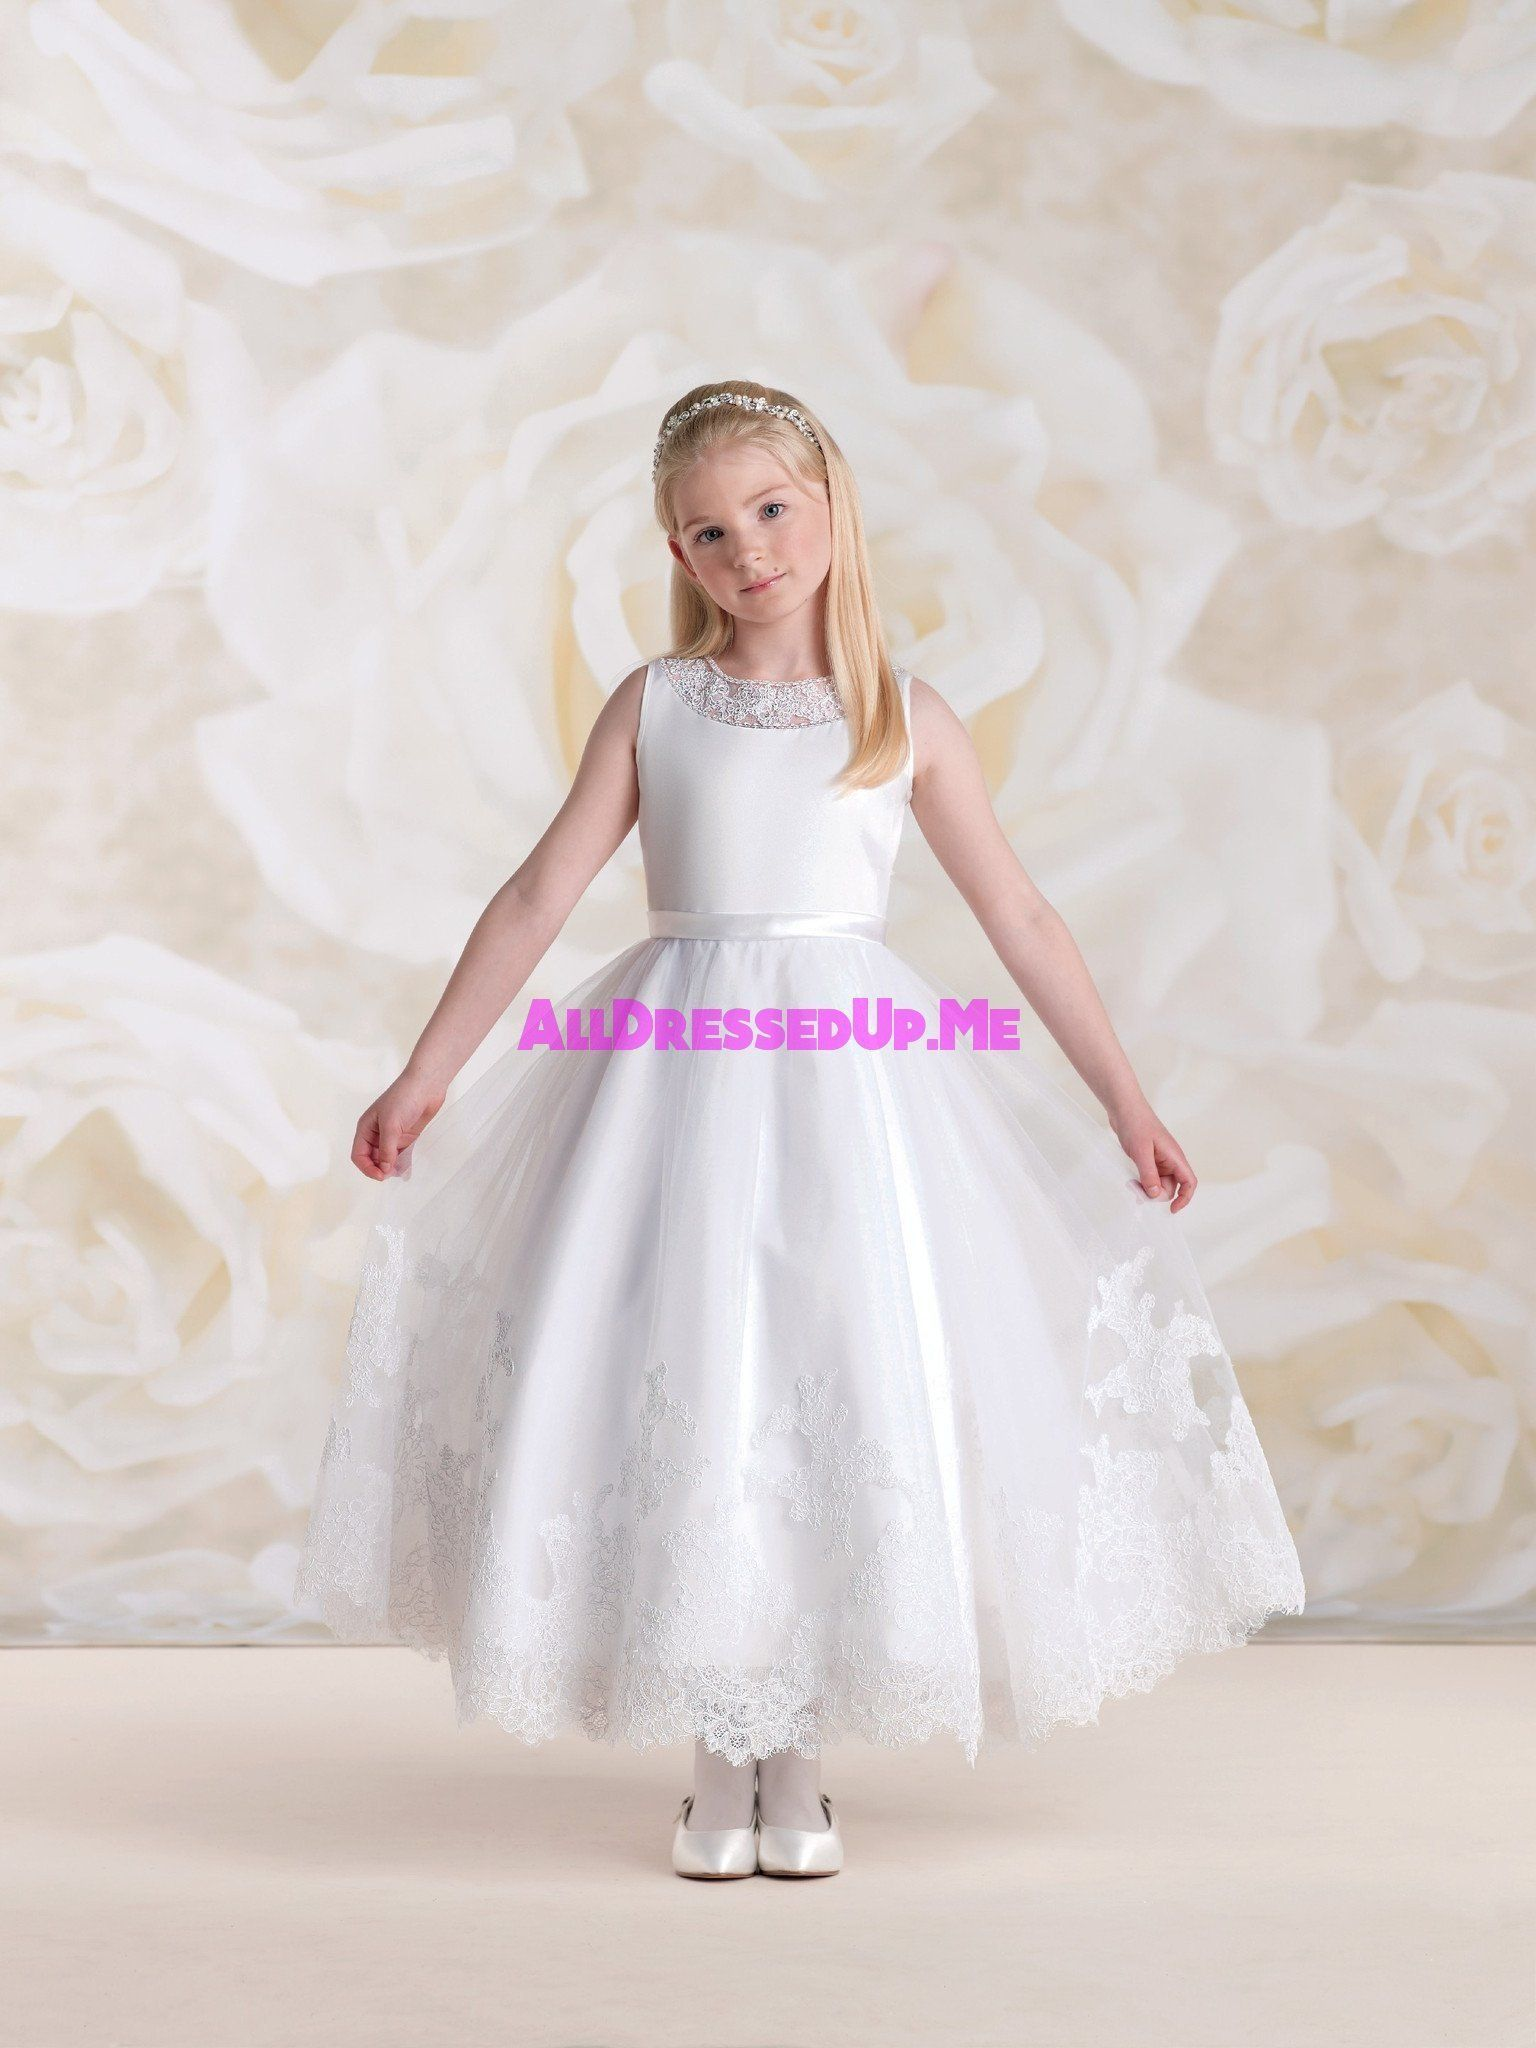 Joan calabrese all dressed up flower girl communion